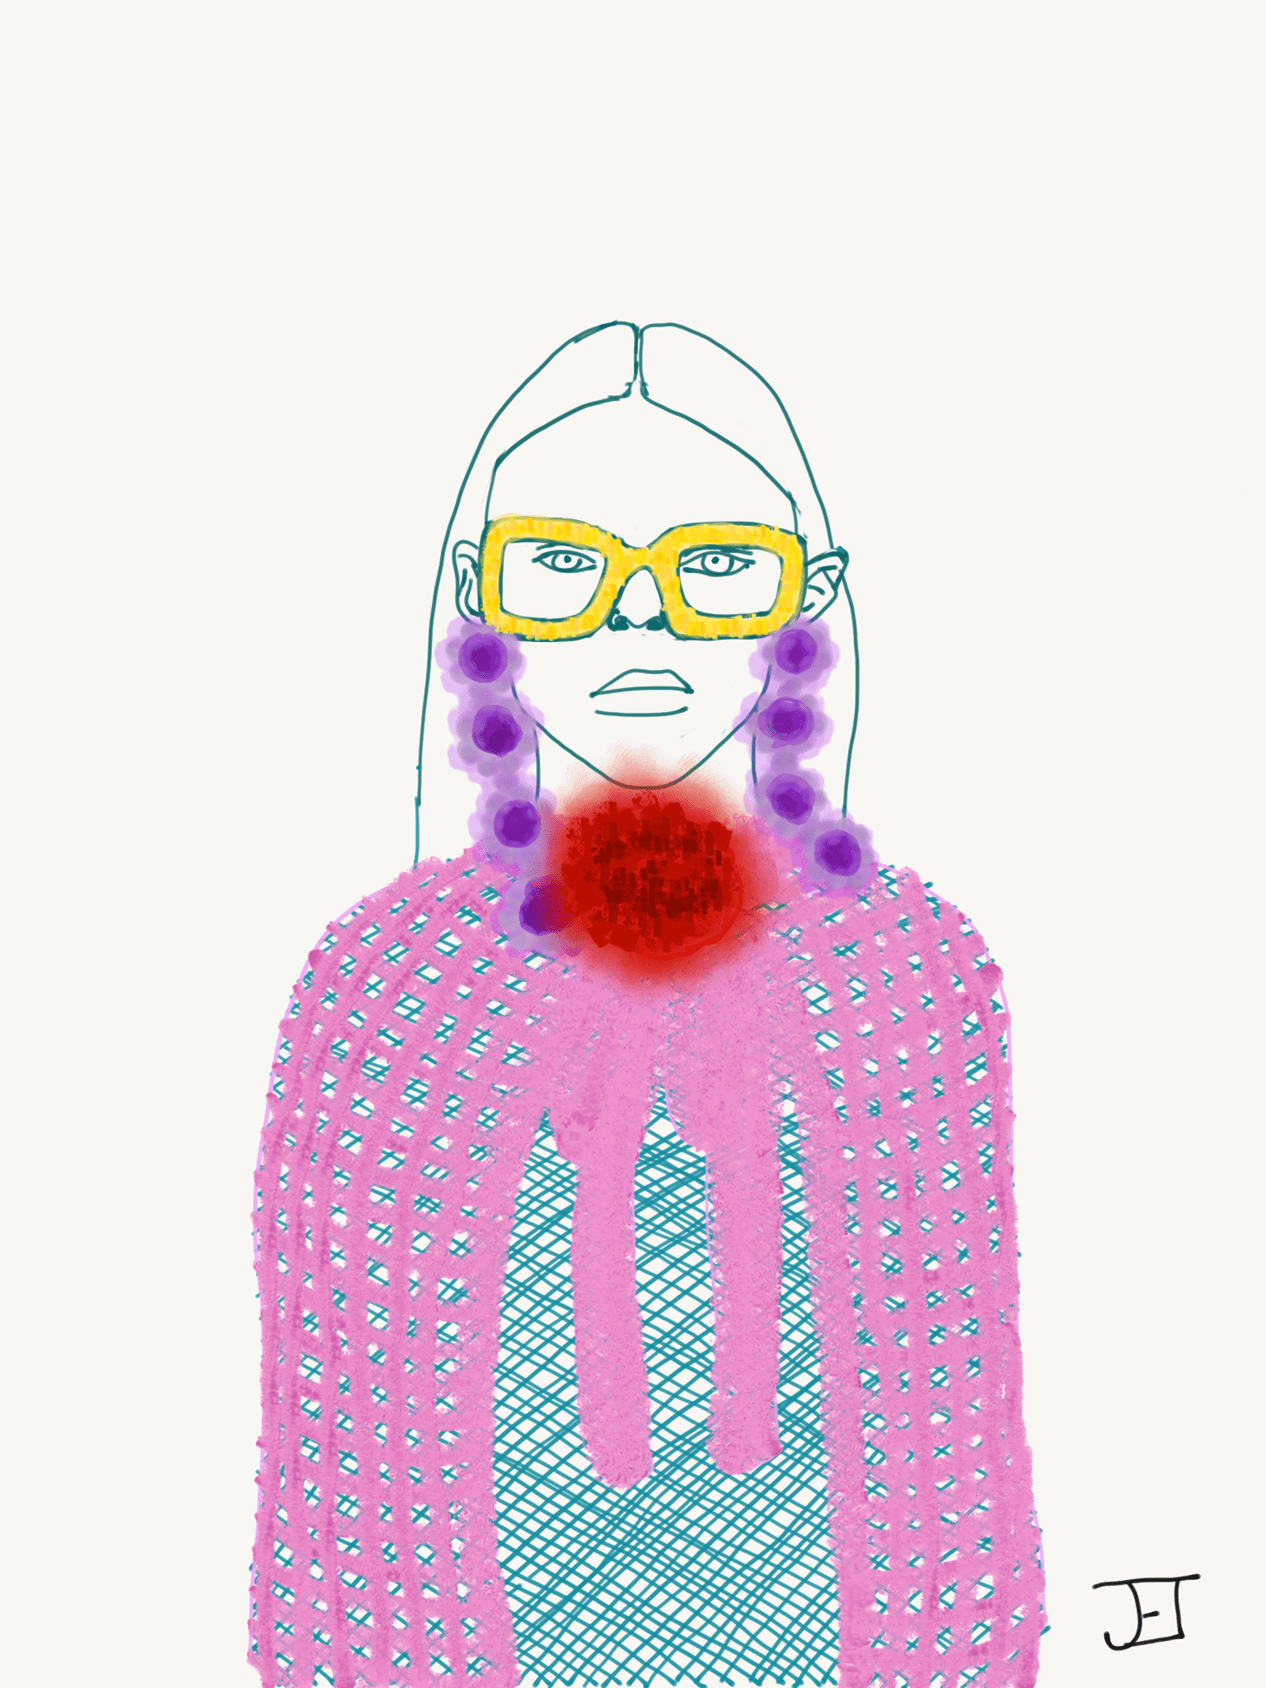 FASHION ILLUSTRATION: Introducing JET